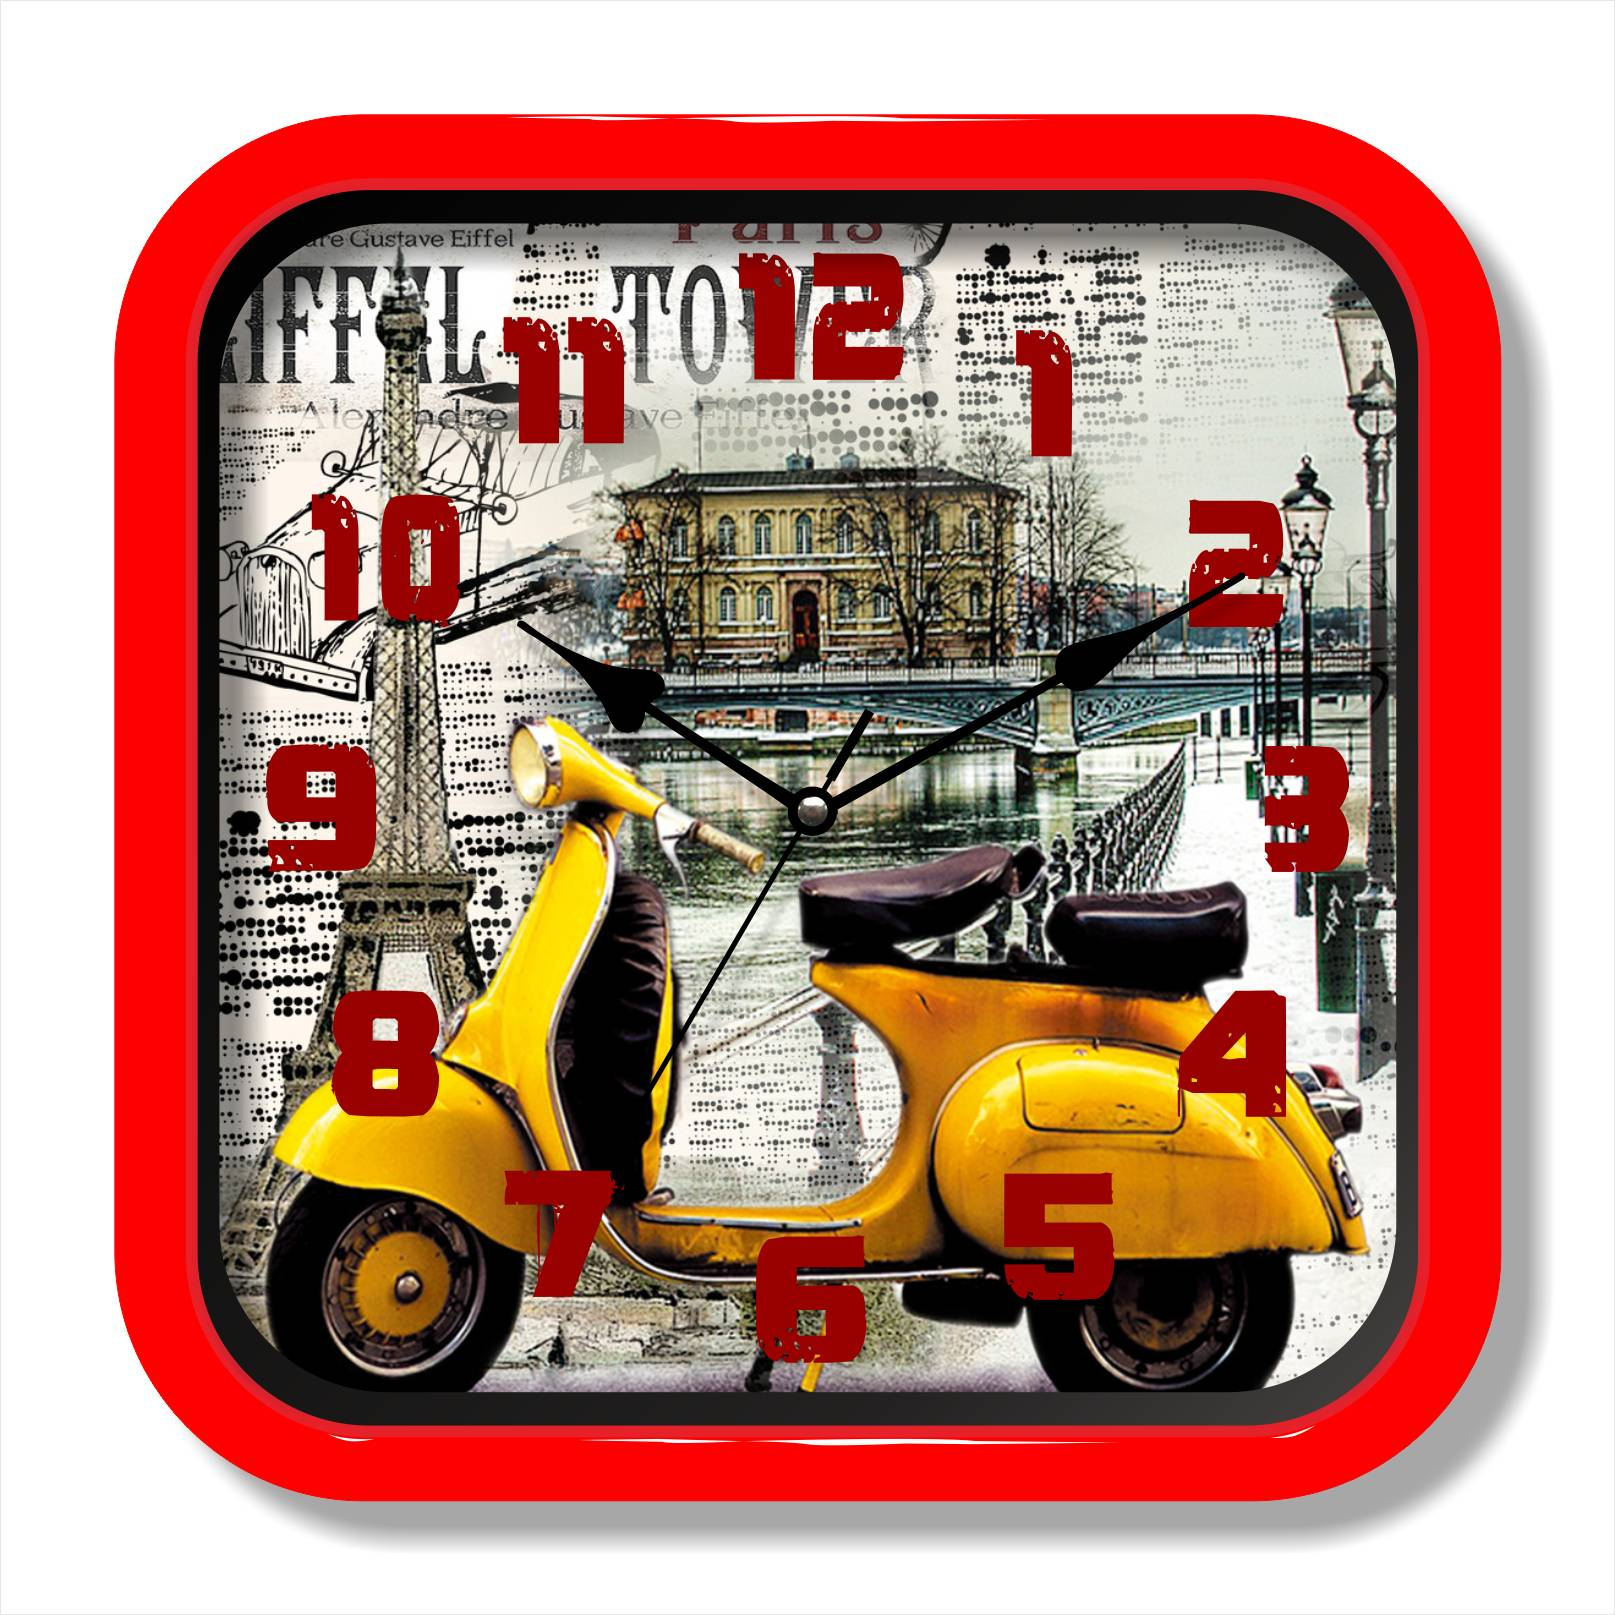 Retro moto painting wall clock